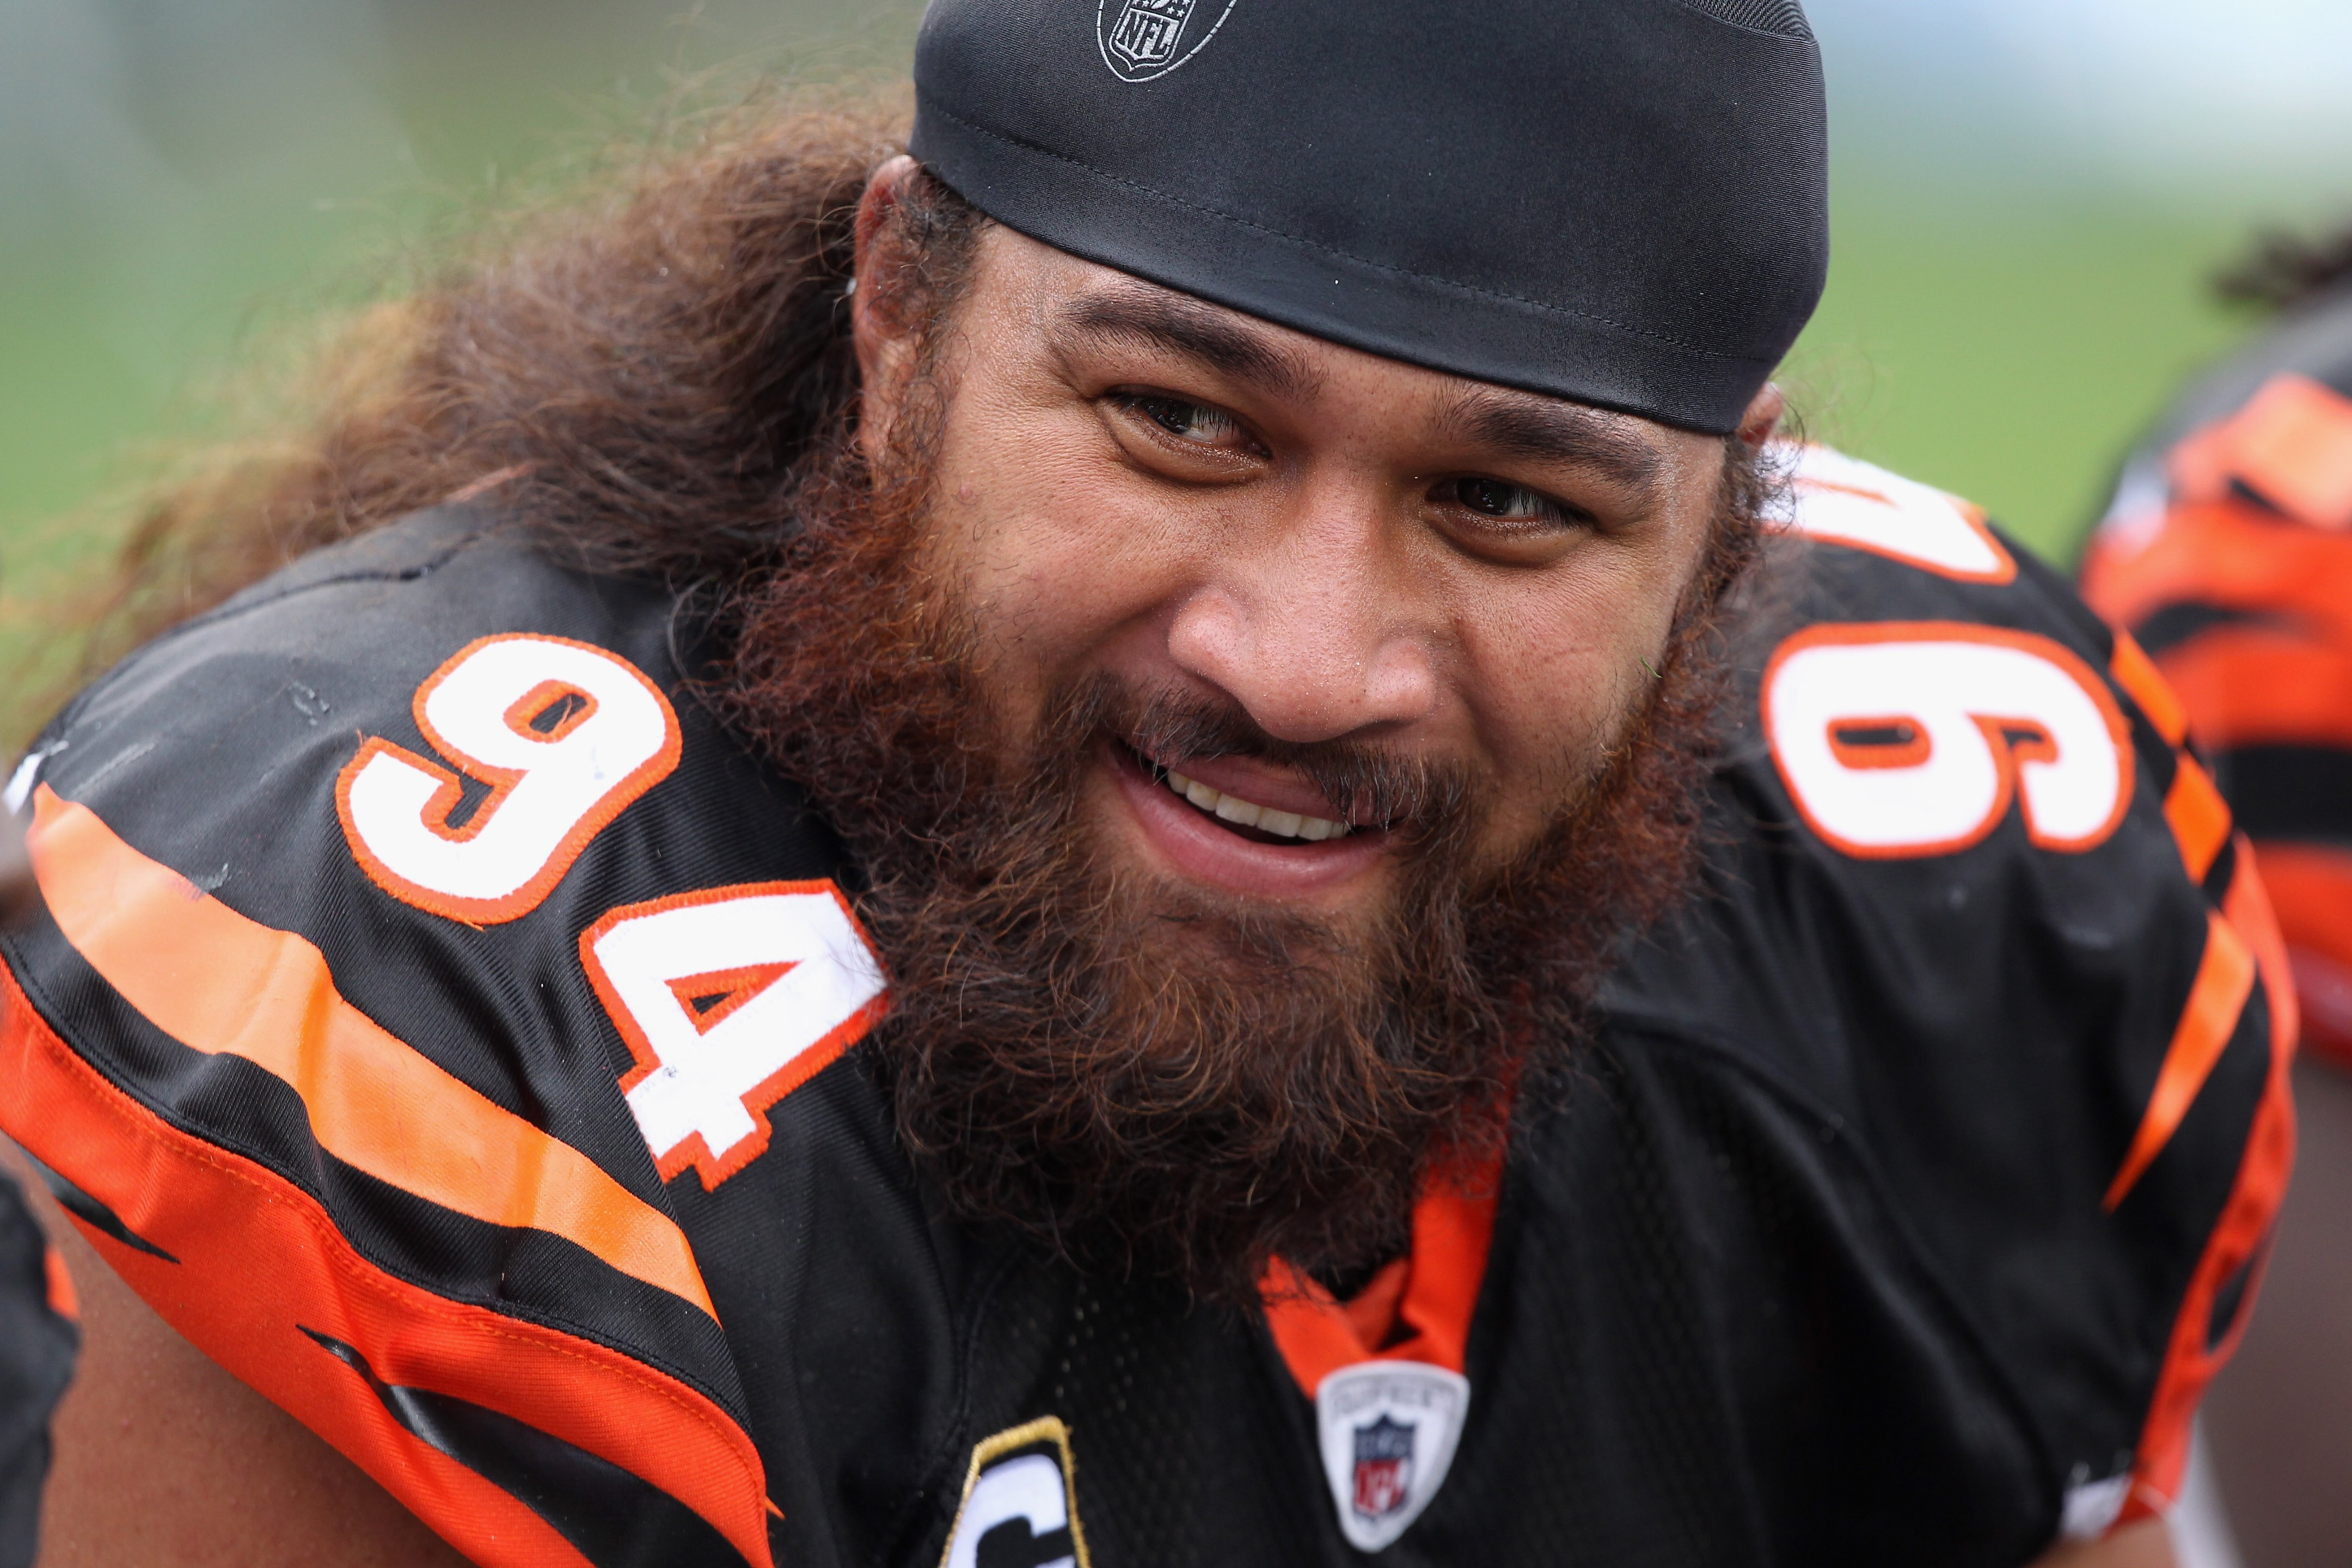 CHARLOTTE, NC - SEPTEMBER 26:  Domata Peko #94 of the Cincinnati Bengals against the Carolina Panthers during their game at Bank of America Stadium on September 26, 2010 in Charlotte, North Carolina.  (Photo by Streeter Lecka/Getty Images)